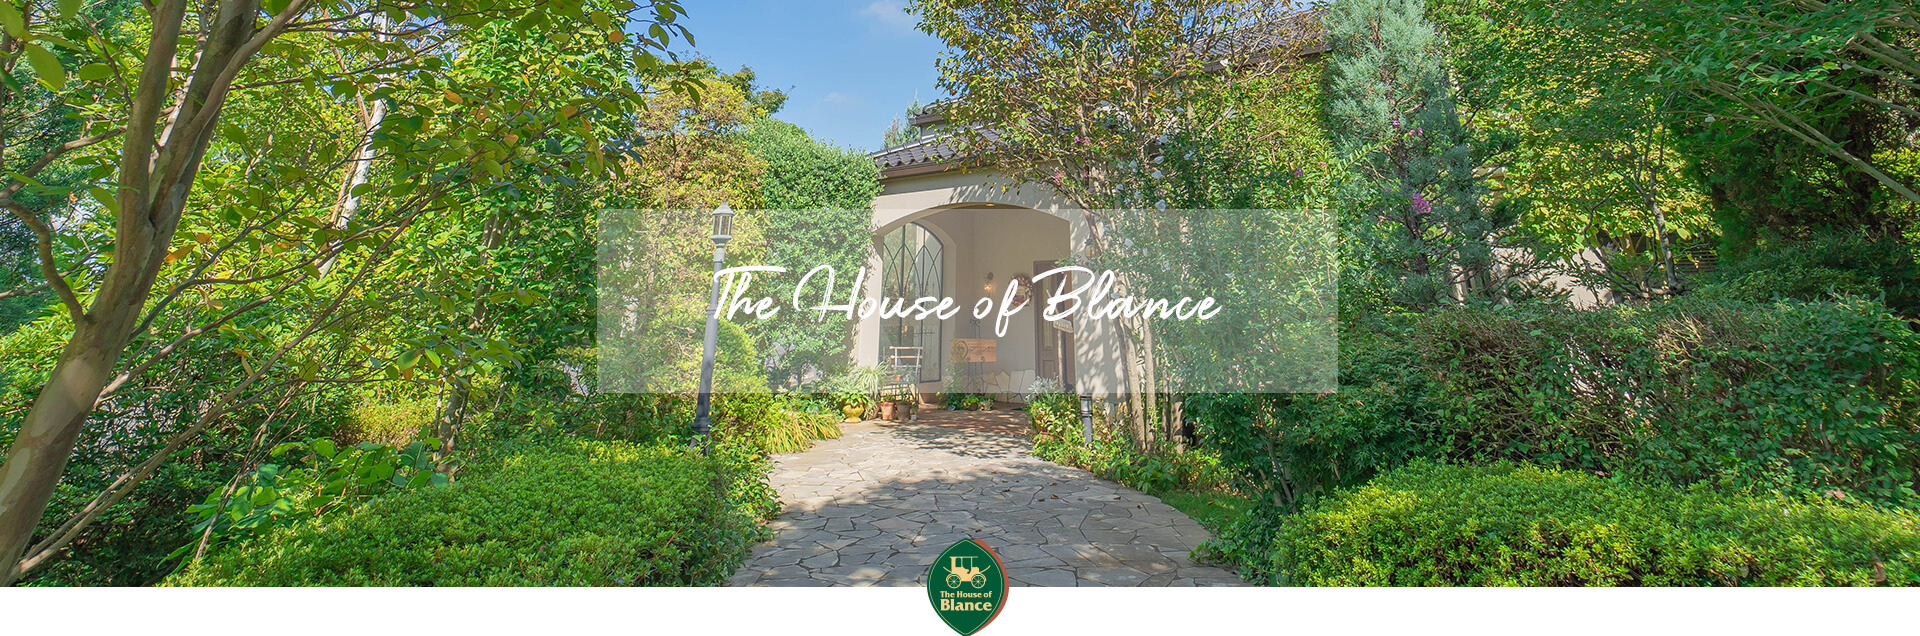 The House of Blance